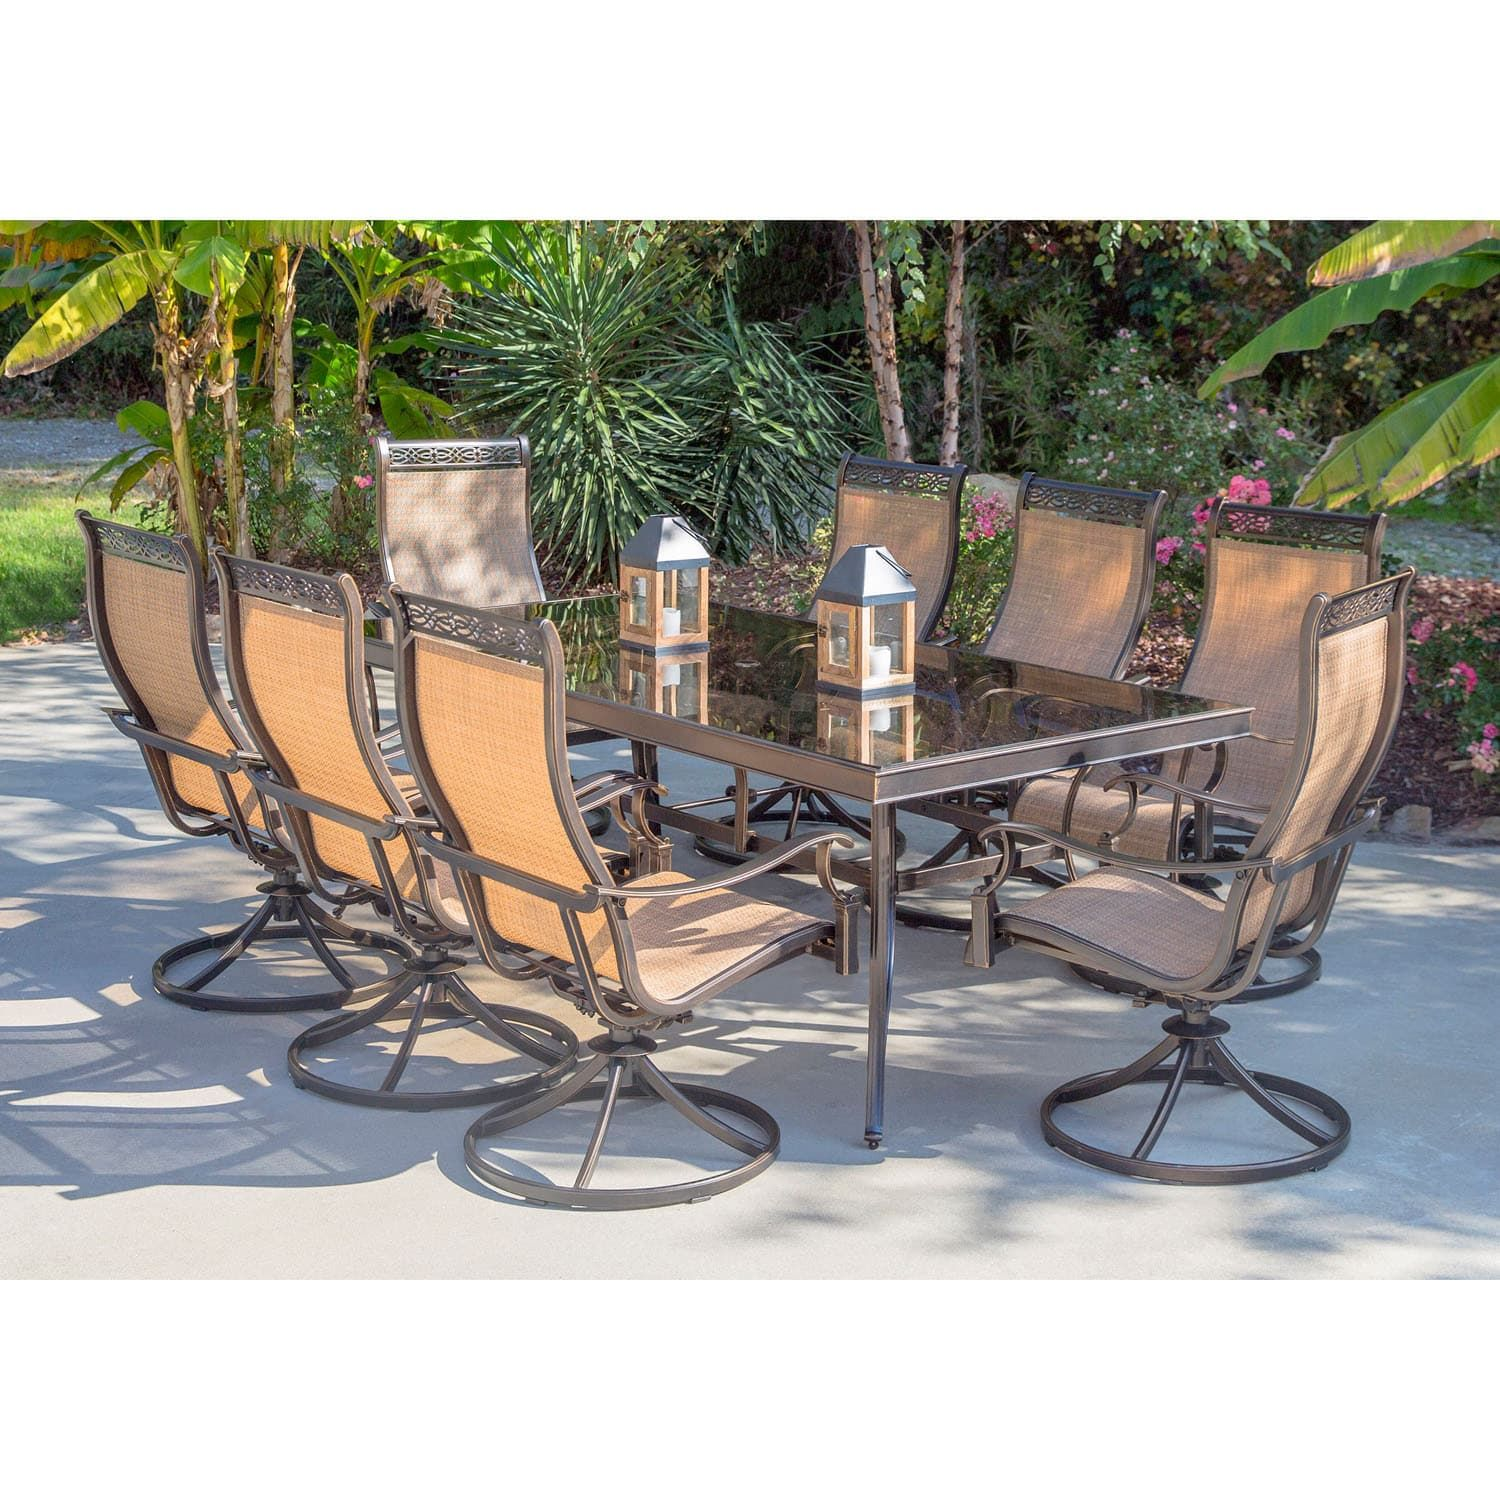 84 inch dining table dining madison hanover monaco 42inc inches high 84inch dining table eight swivel rockers 9piece set tan size 9piece sets patio furniture aluminum